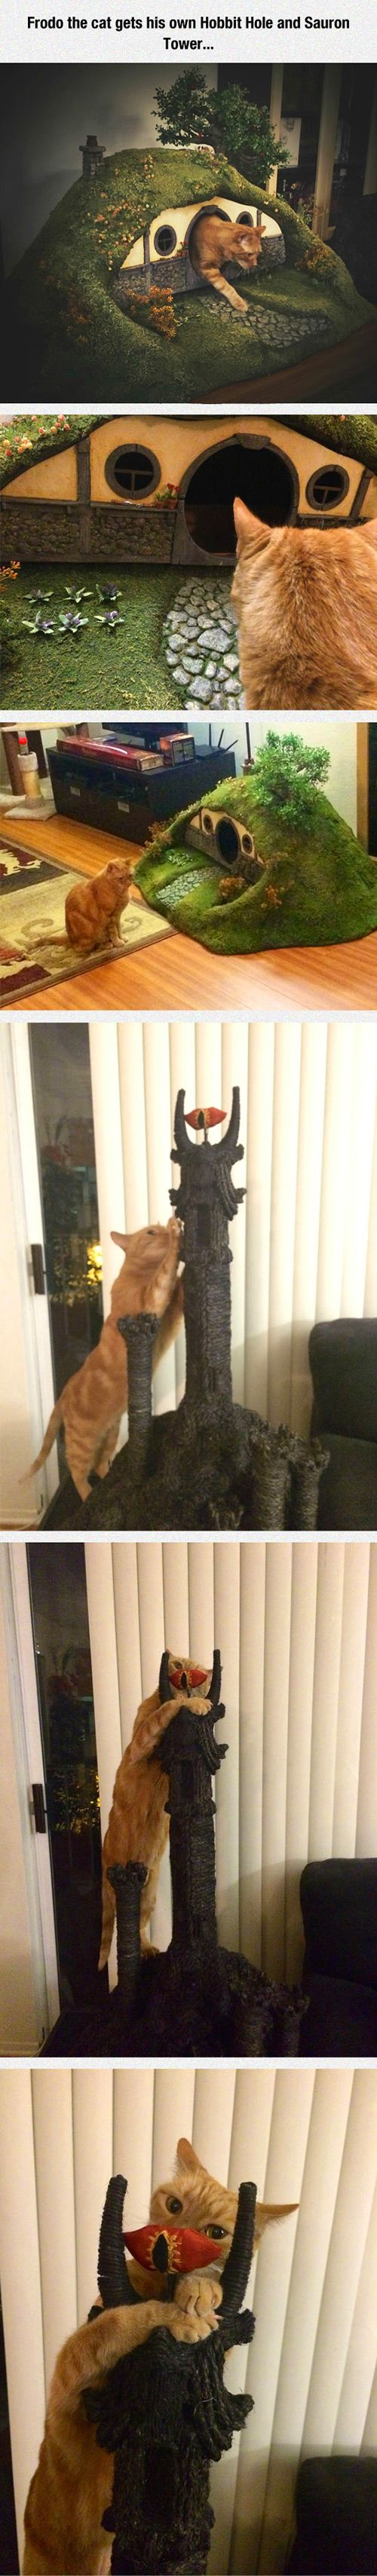 One Cat to Rule Them All.